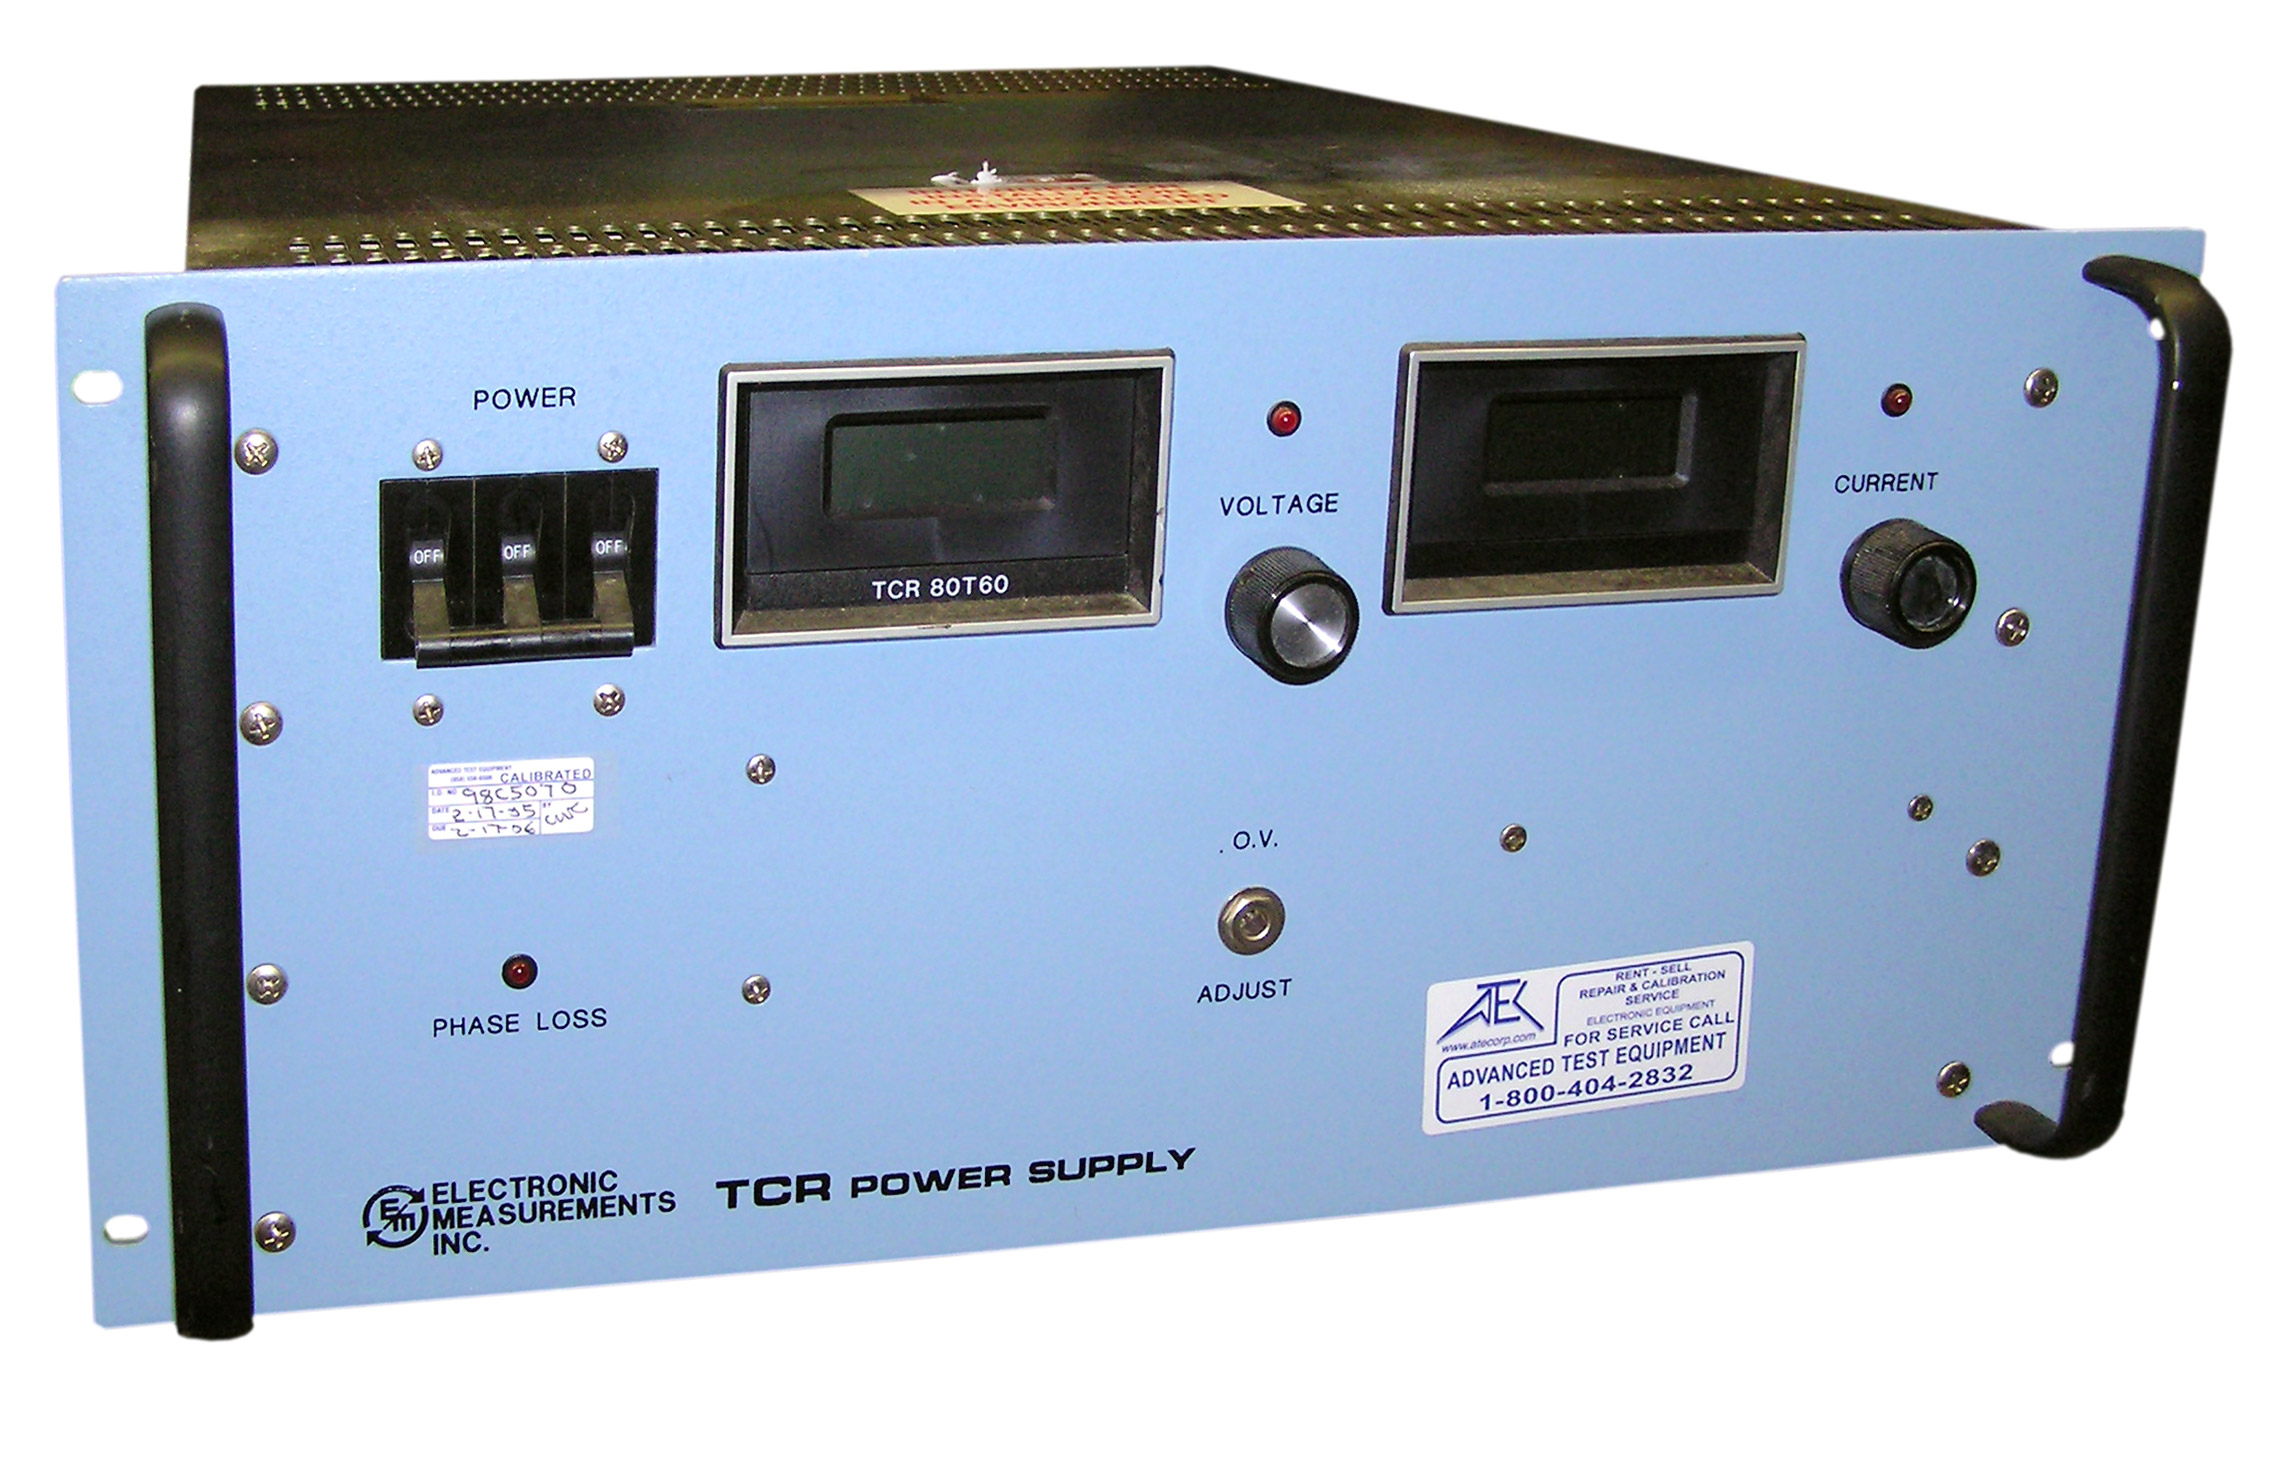 EMI / TDK-Lambda TCR 80T60-1-D-0 Three Phase DC Power Supply